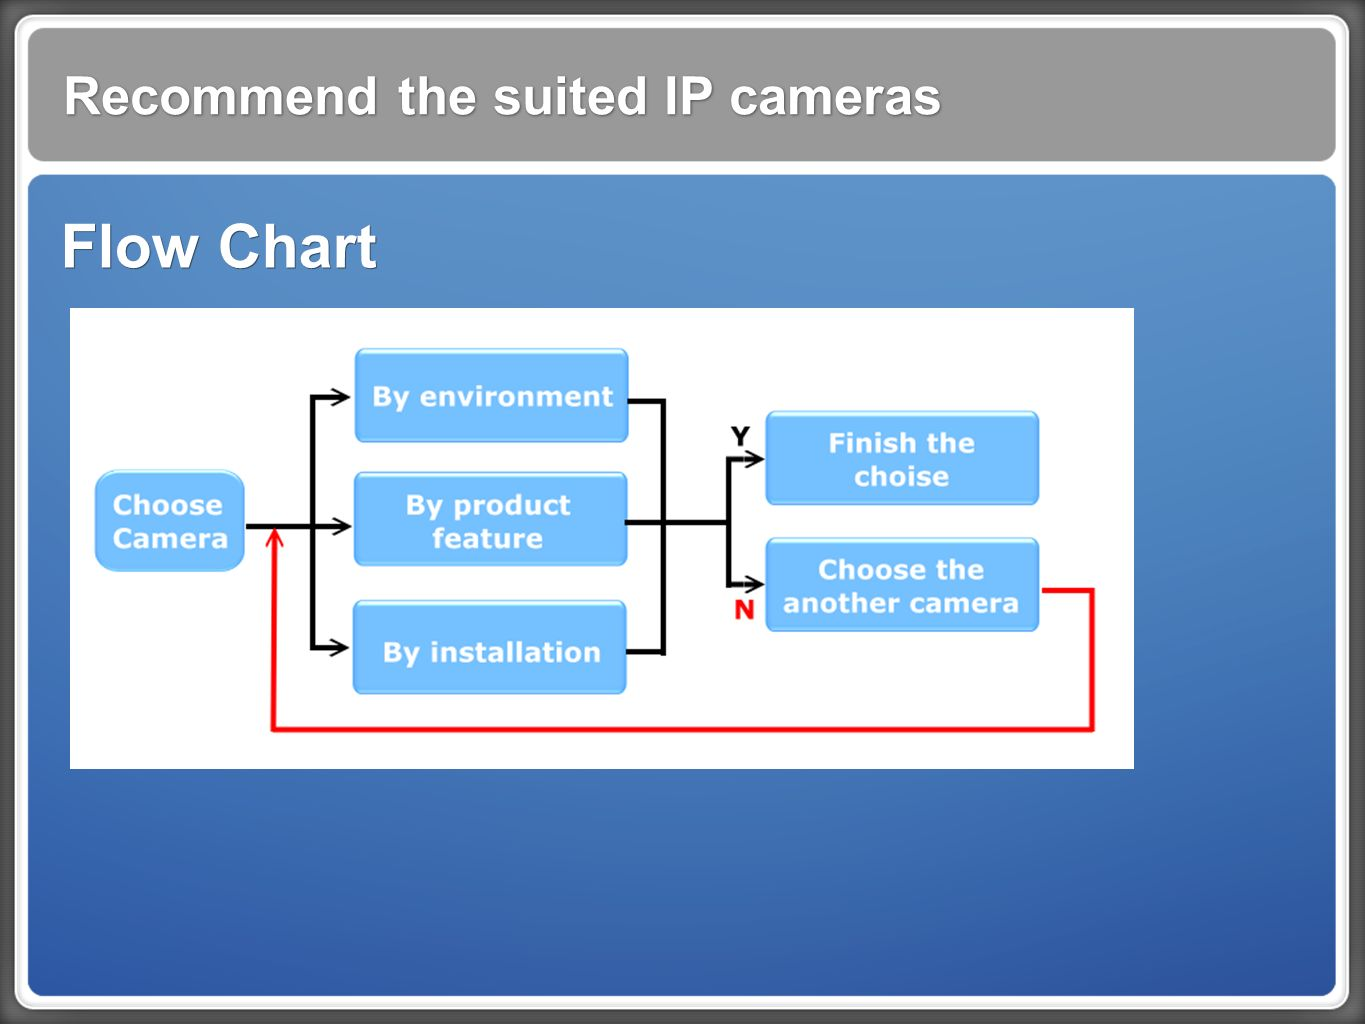 Recommend the suited IP cameras Flow Chart